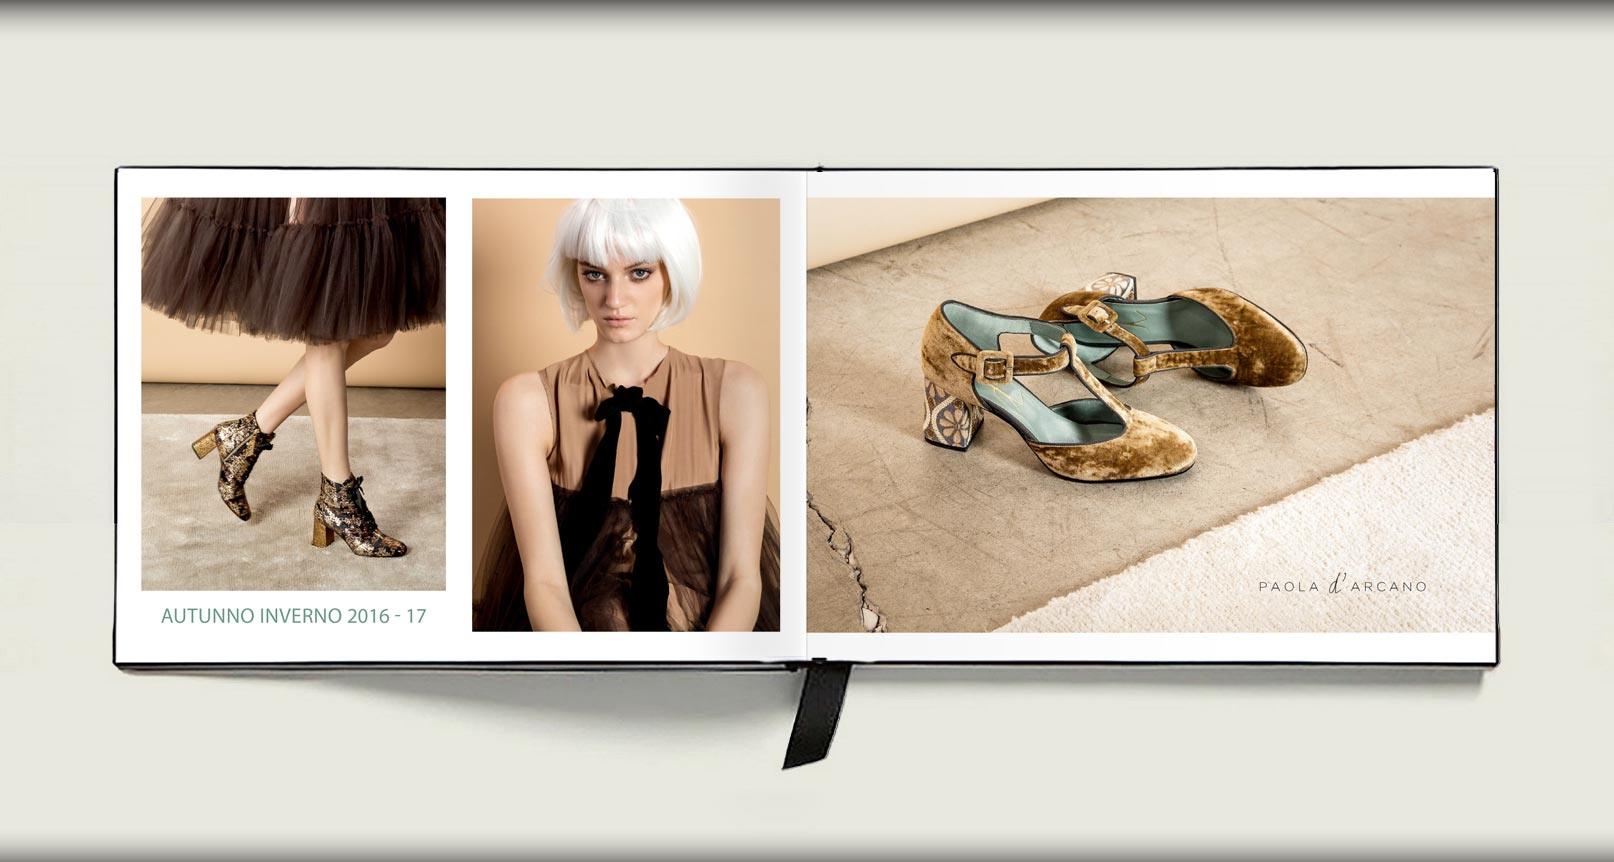 Story Paola D'Arcano Shoes Made in Italy - 12